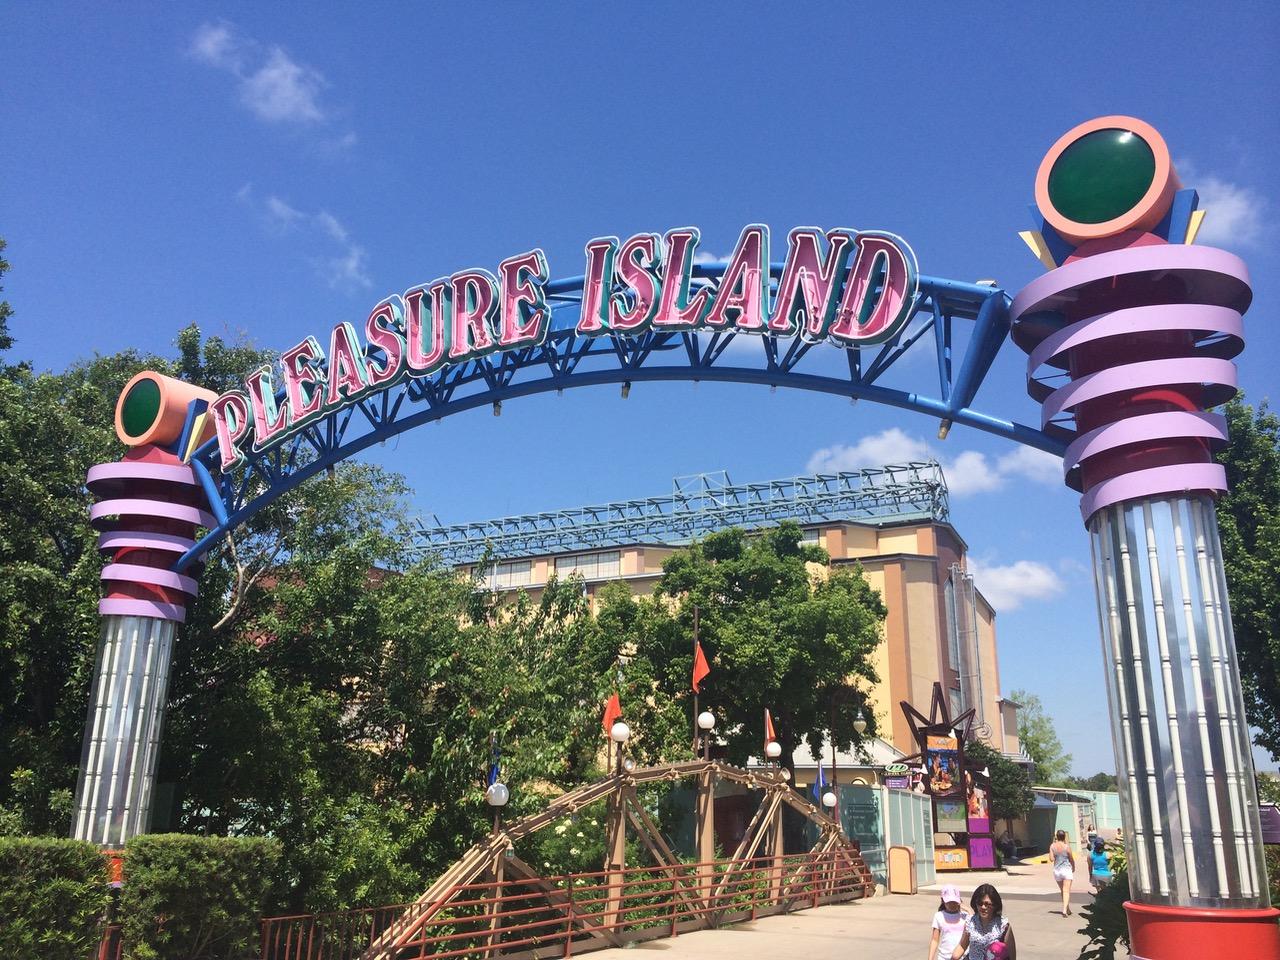 Pleasure Island was an entertainment offering unlike anything on Walt Disney World property at the time. It was its own era. Behind the sign is the old Mannequins building, now the Morimoto Asia Restaurant. Photo by J. Jeff Kober.